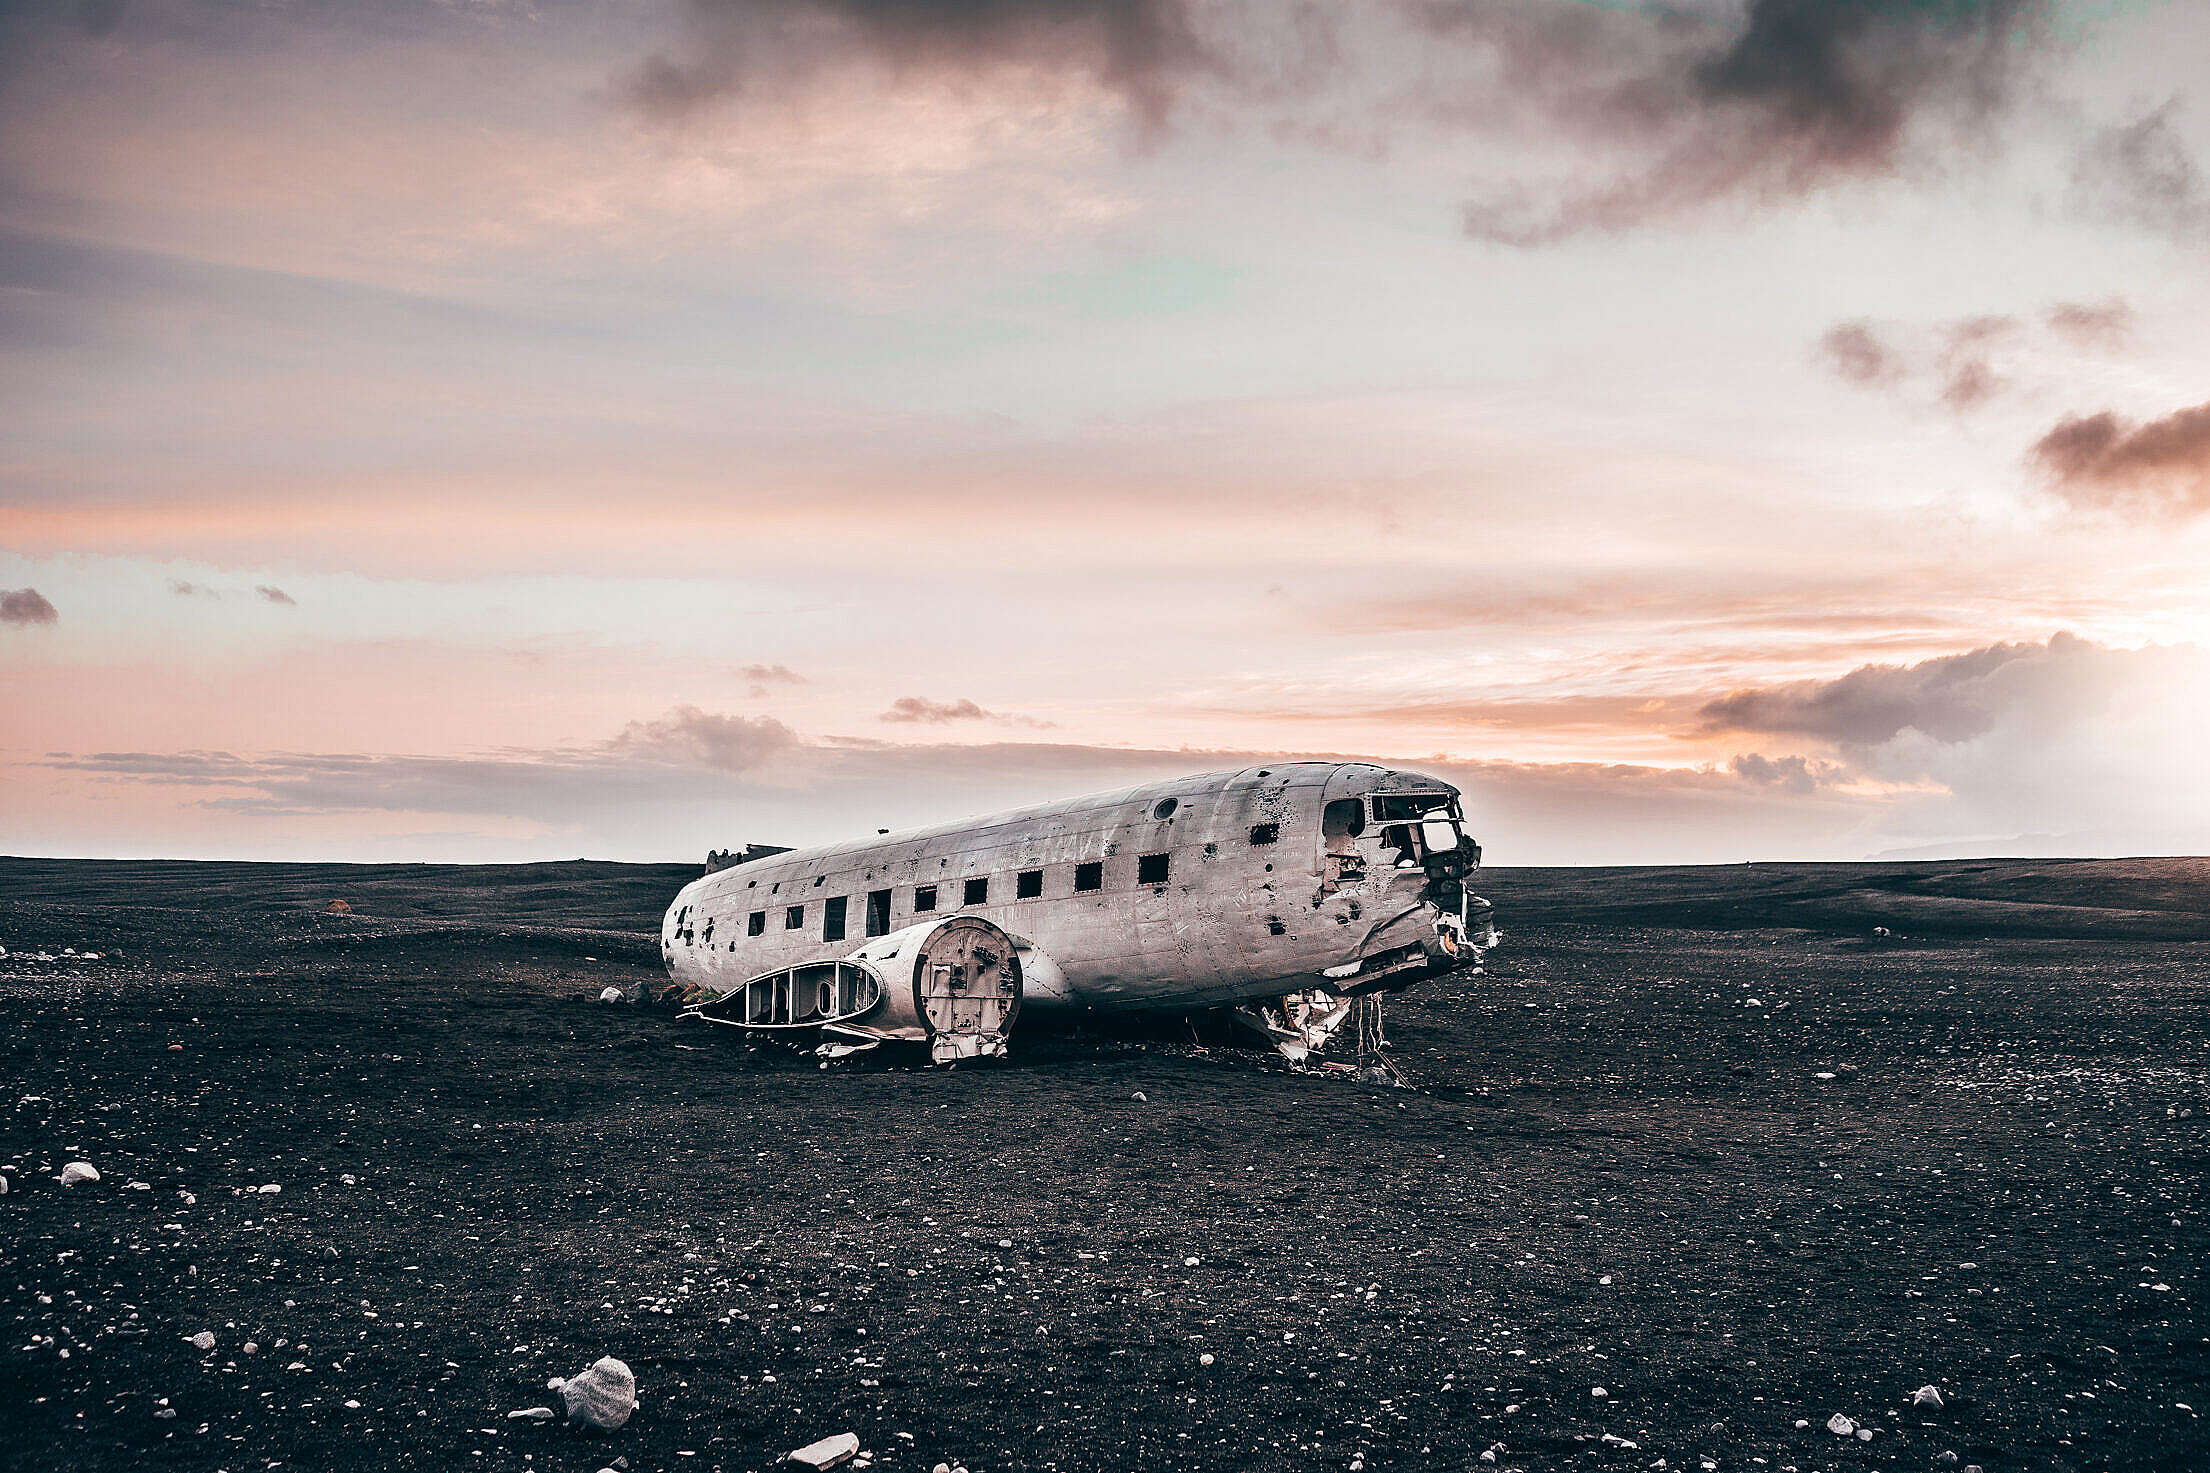 Famous Plane Wreck in Iceland Free Stock Photo